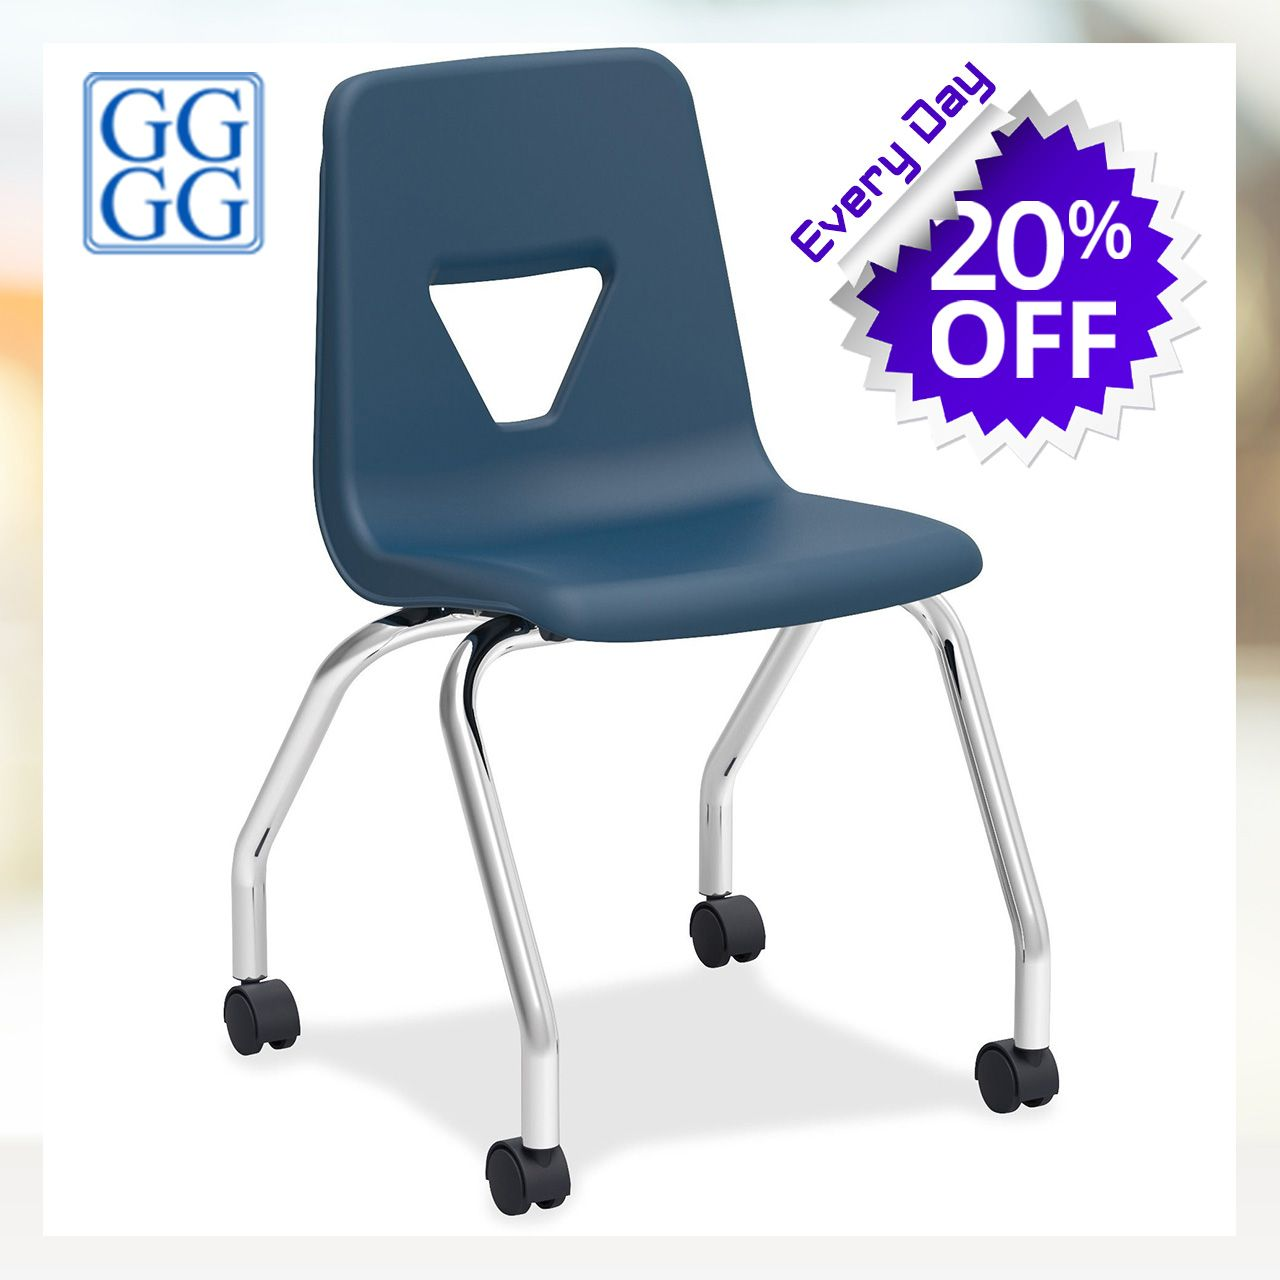 Ergonomic office chairs and more 20 off at genesis